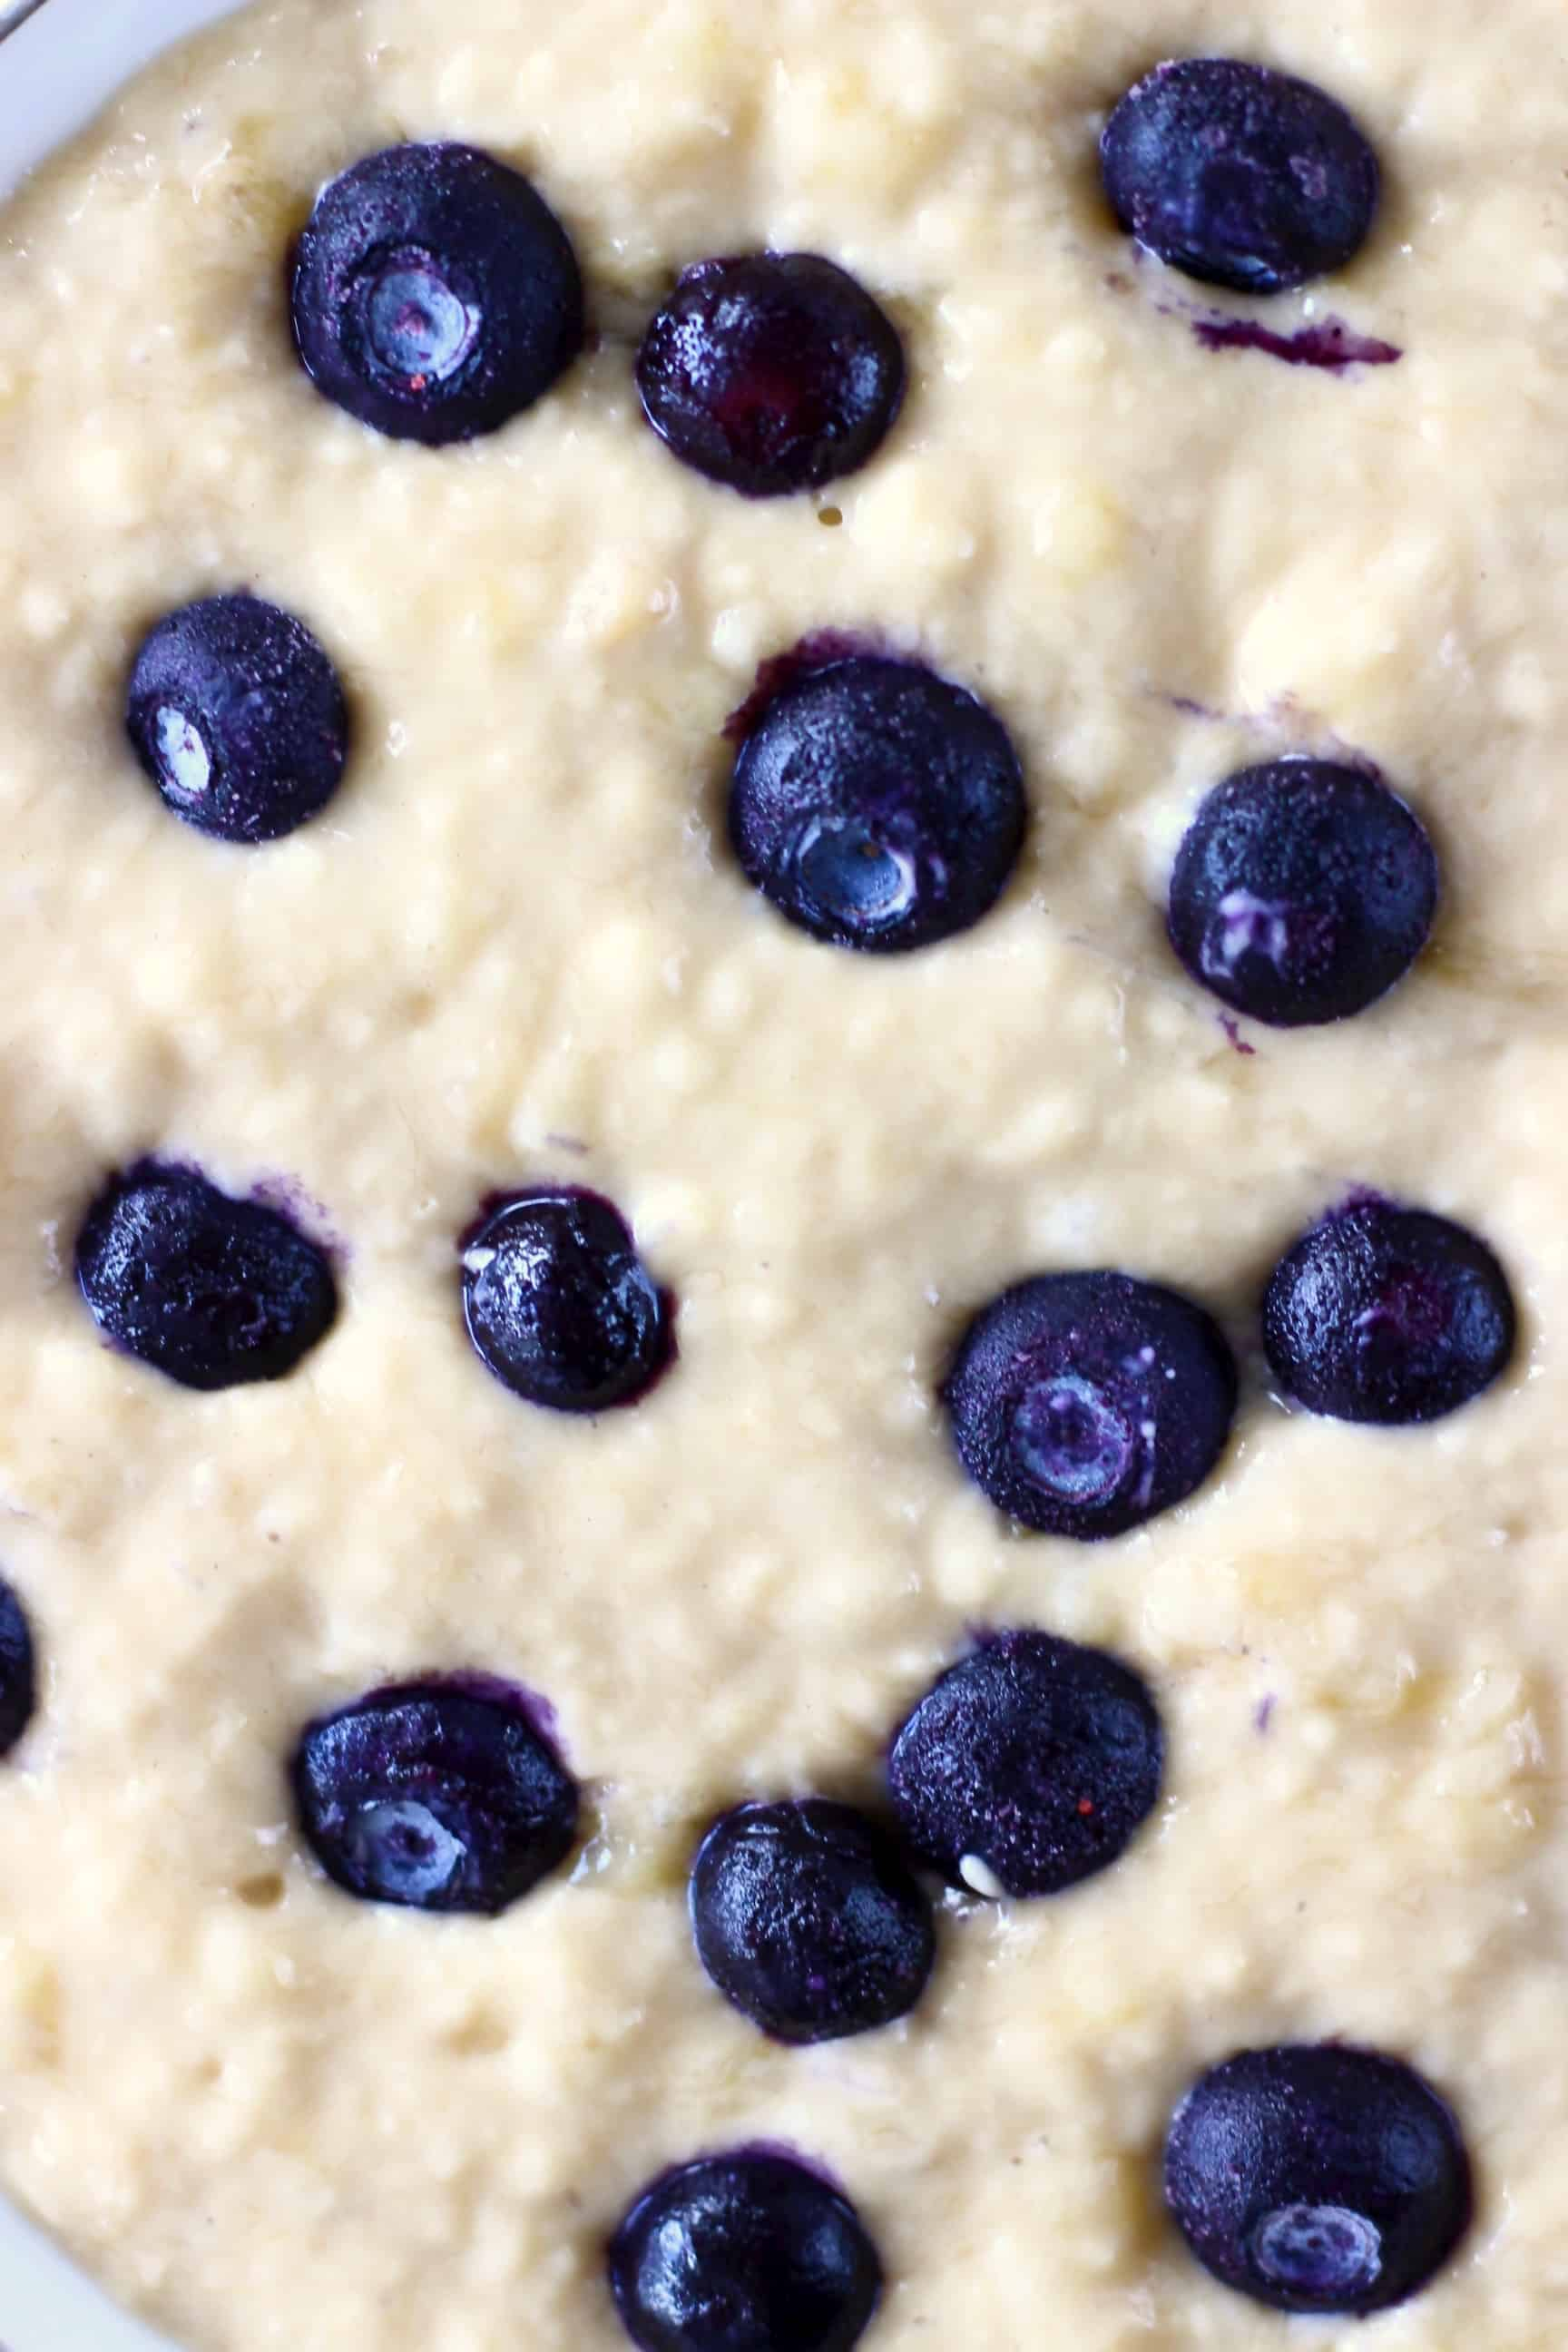 Gluten-free vegan banana bread batter with blueberries in a bowl